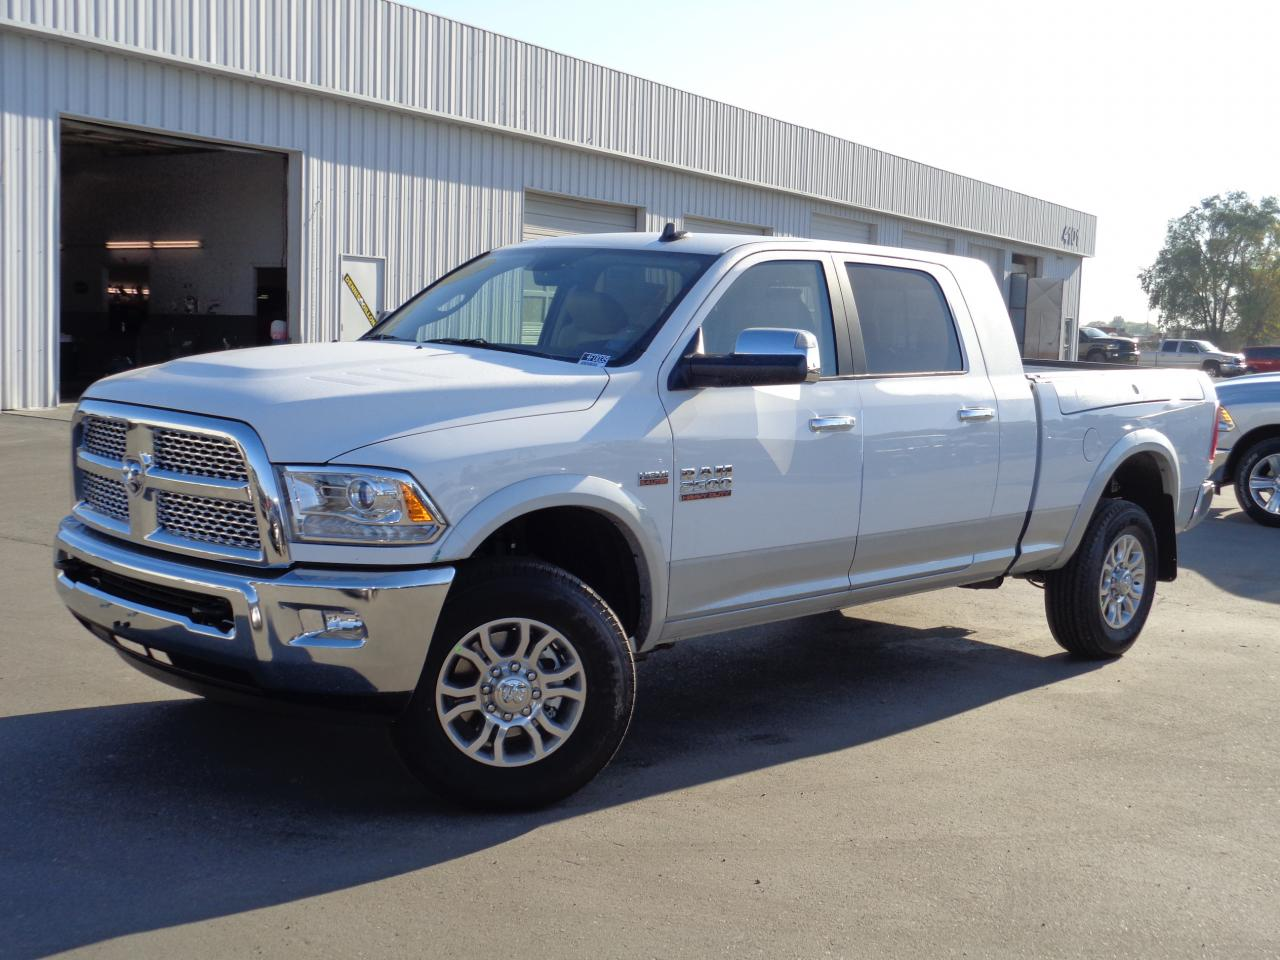 2015 Ram 2500 - Information and photos - Zomb Drive